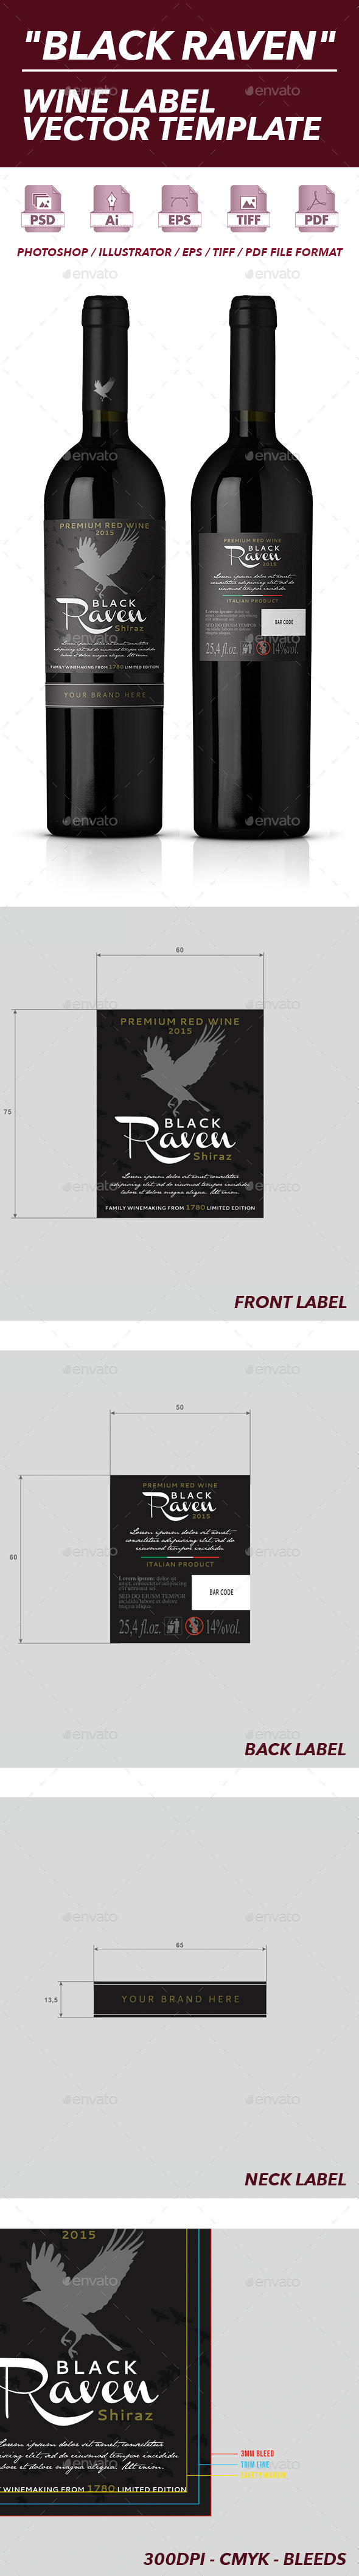 Red Wine Label Vector Template - Packaging Print Templates